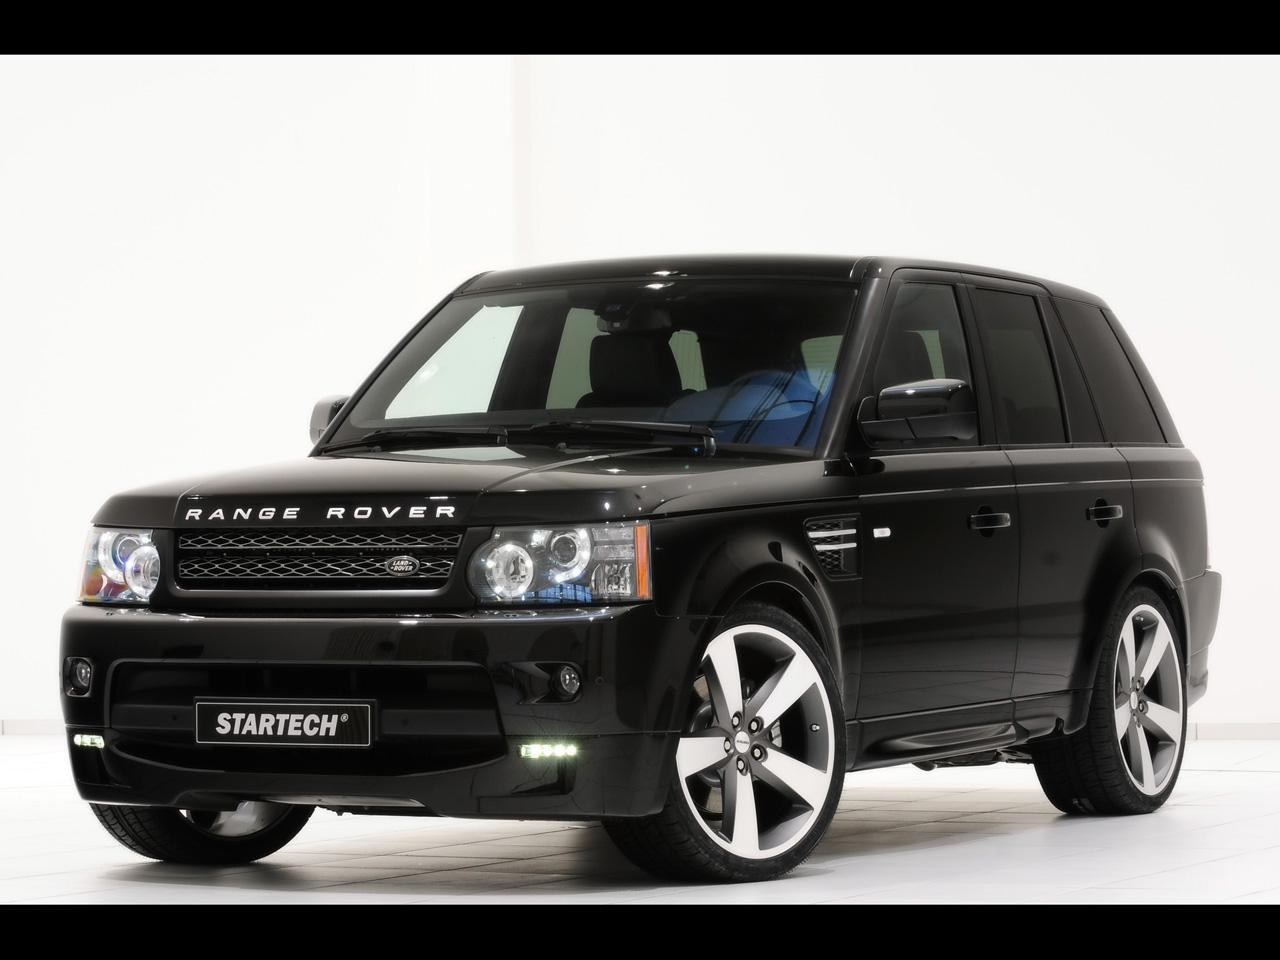 Land Rover Best Cars Wallpapers Car Wallpapers